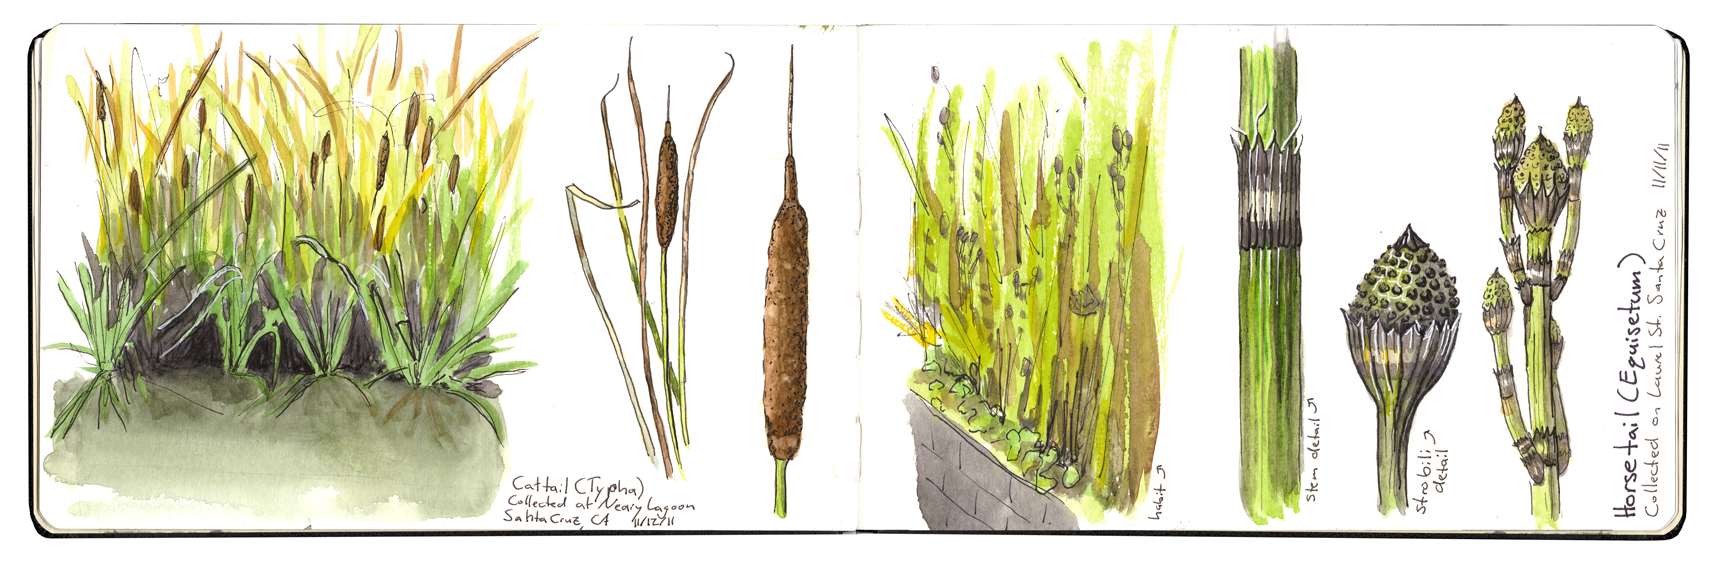 Marsh plants in sketchbook by Emily Coren (walkaboutem.com)